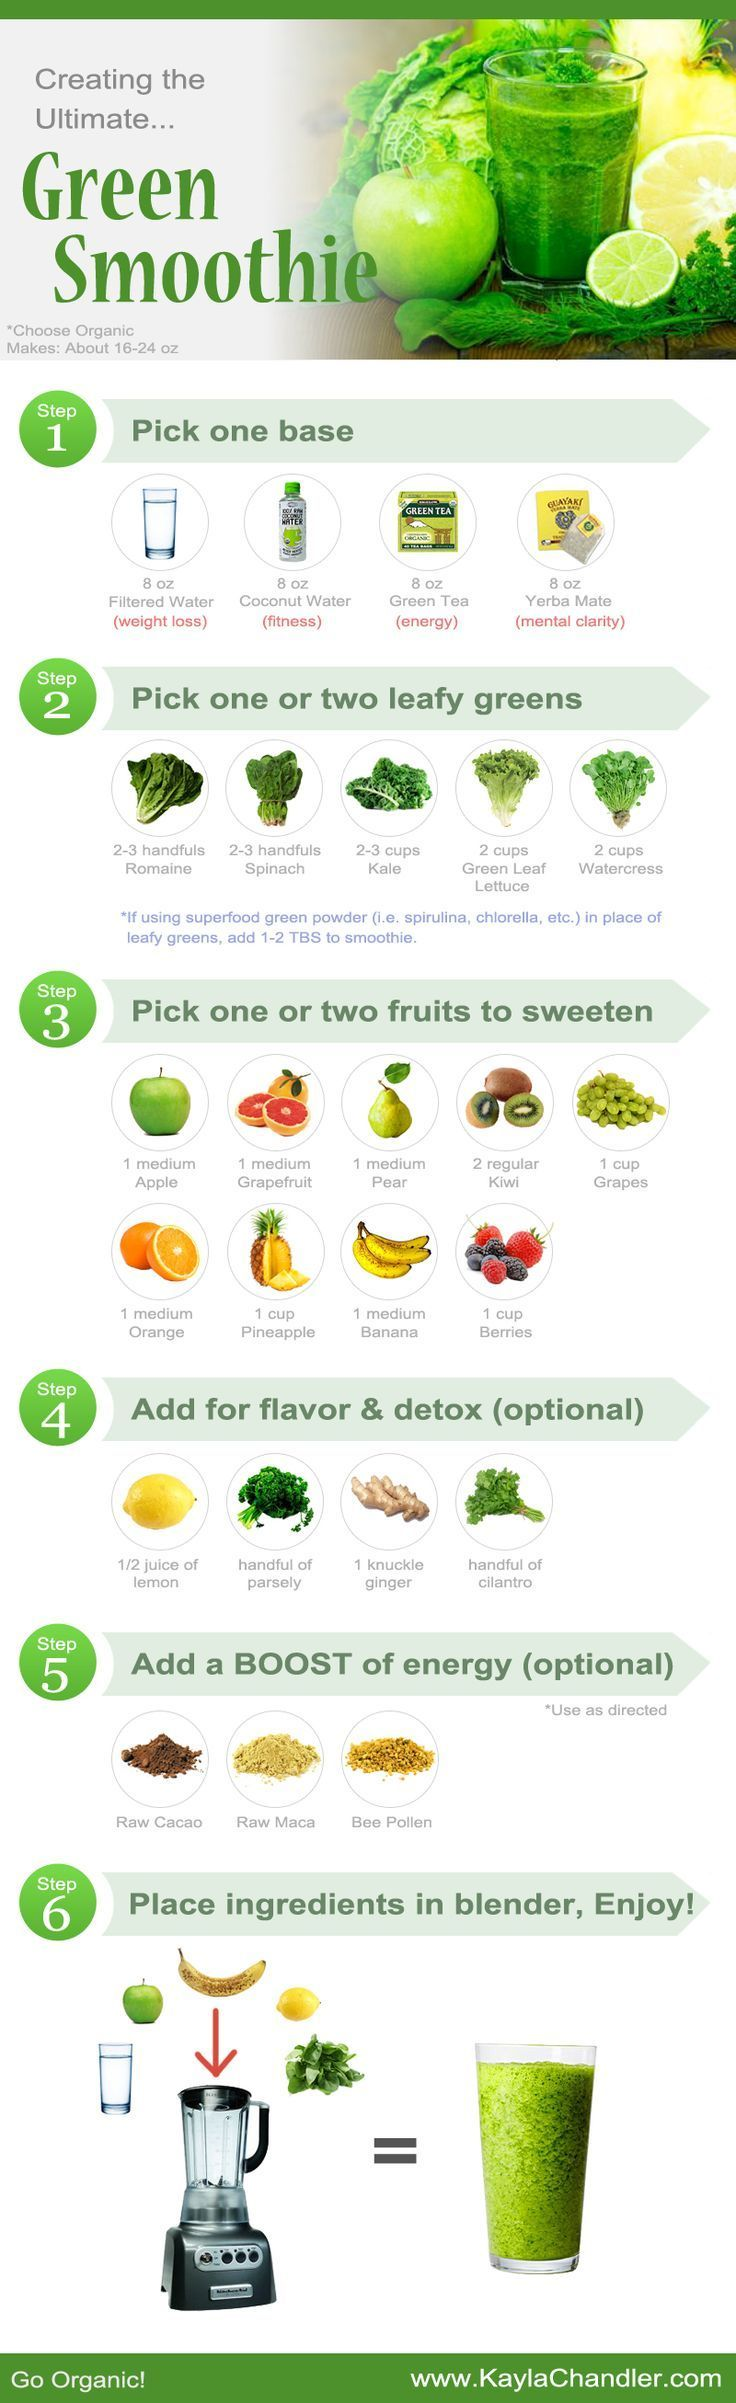 Guide to making the ultimate Green Smoothie for health, weight loss, and energy….